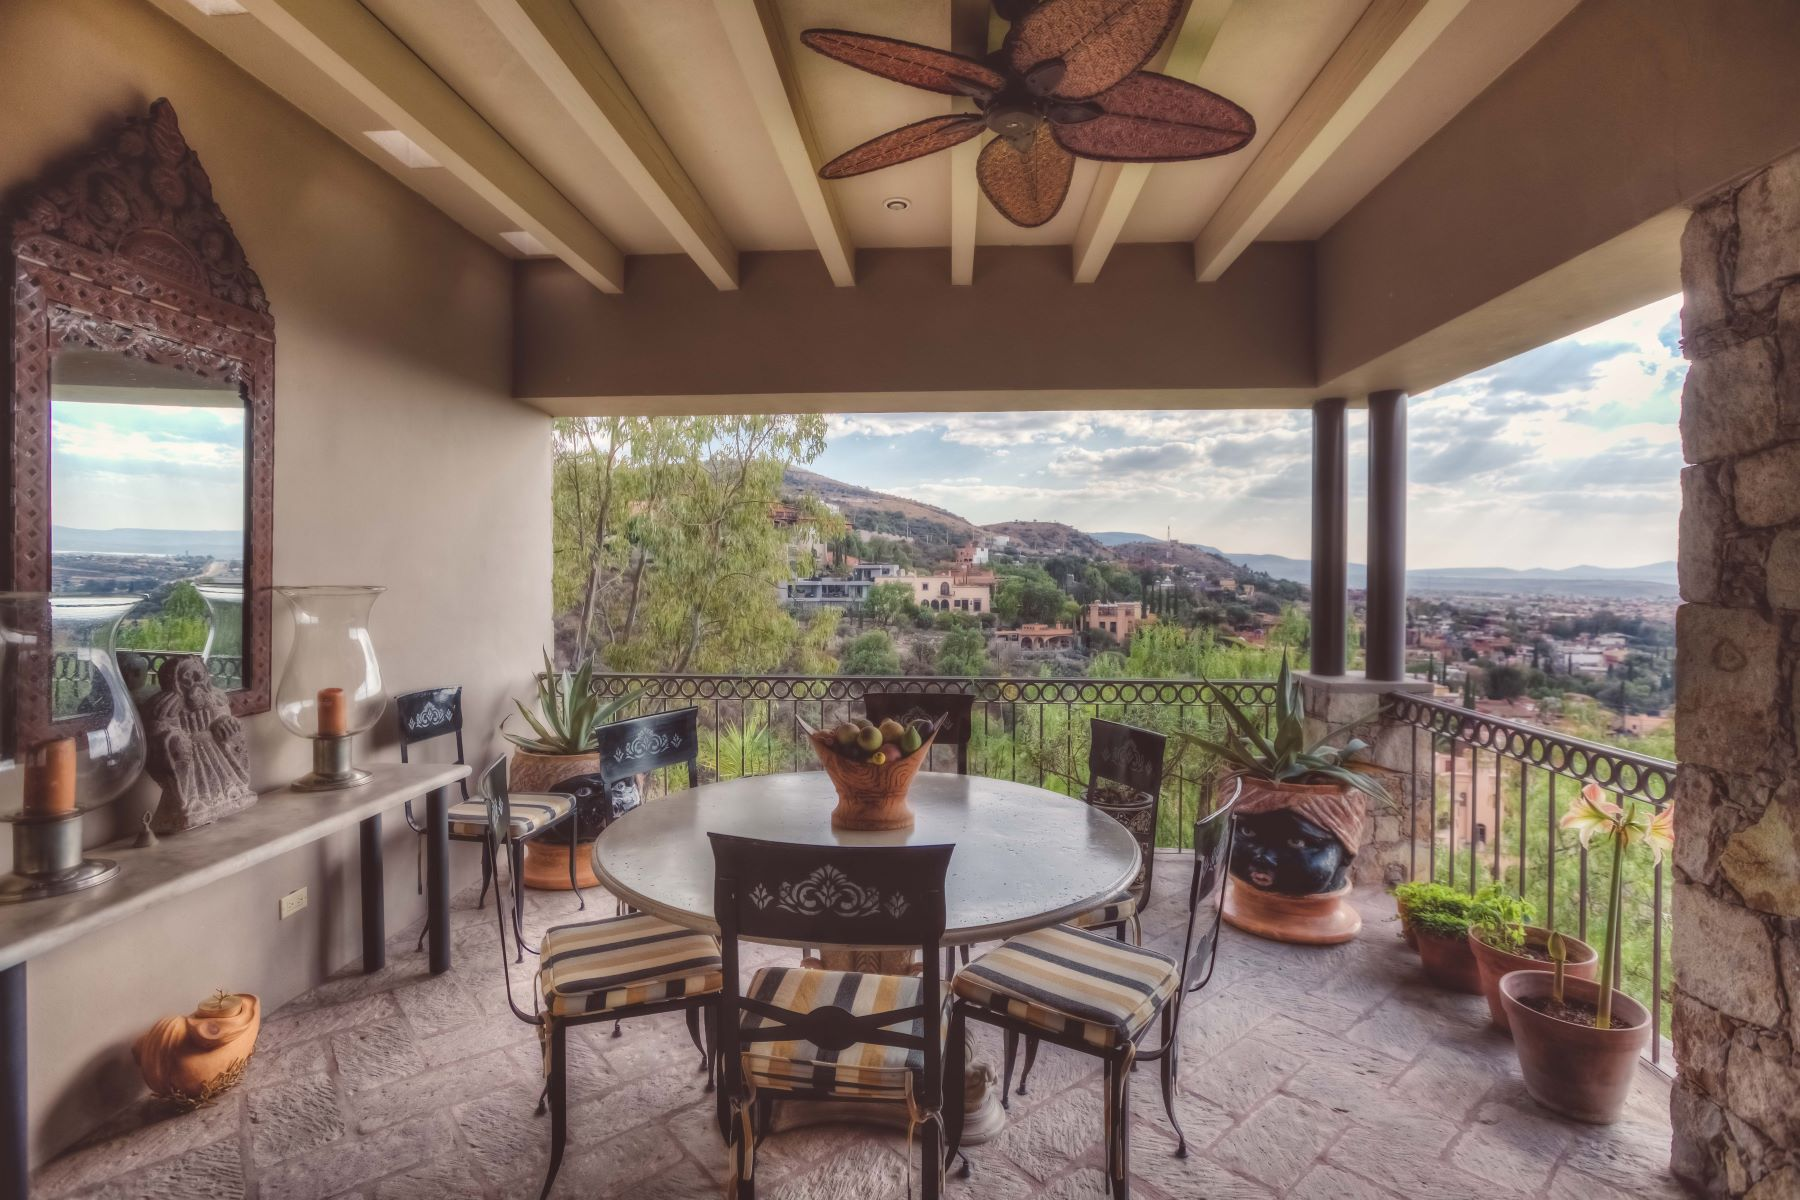 Additional photo for property listing at QUINTA BELLA VISTA Callejon del Chorro San Miguel De Allende, Guanajuato 37700 Mexico